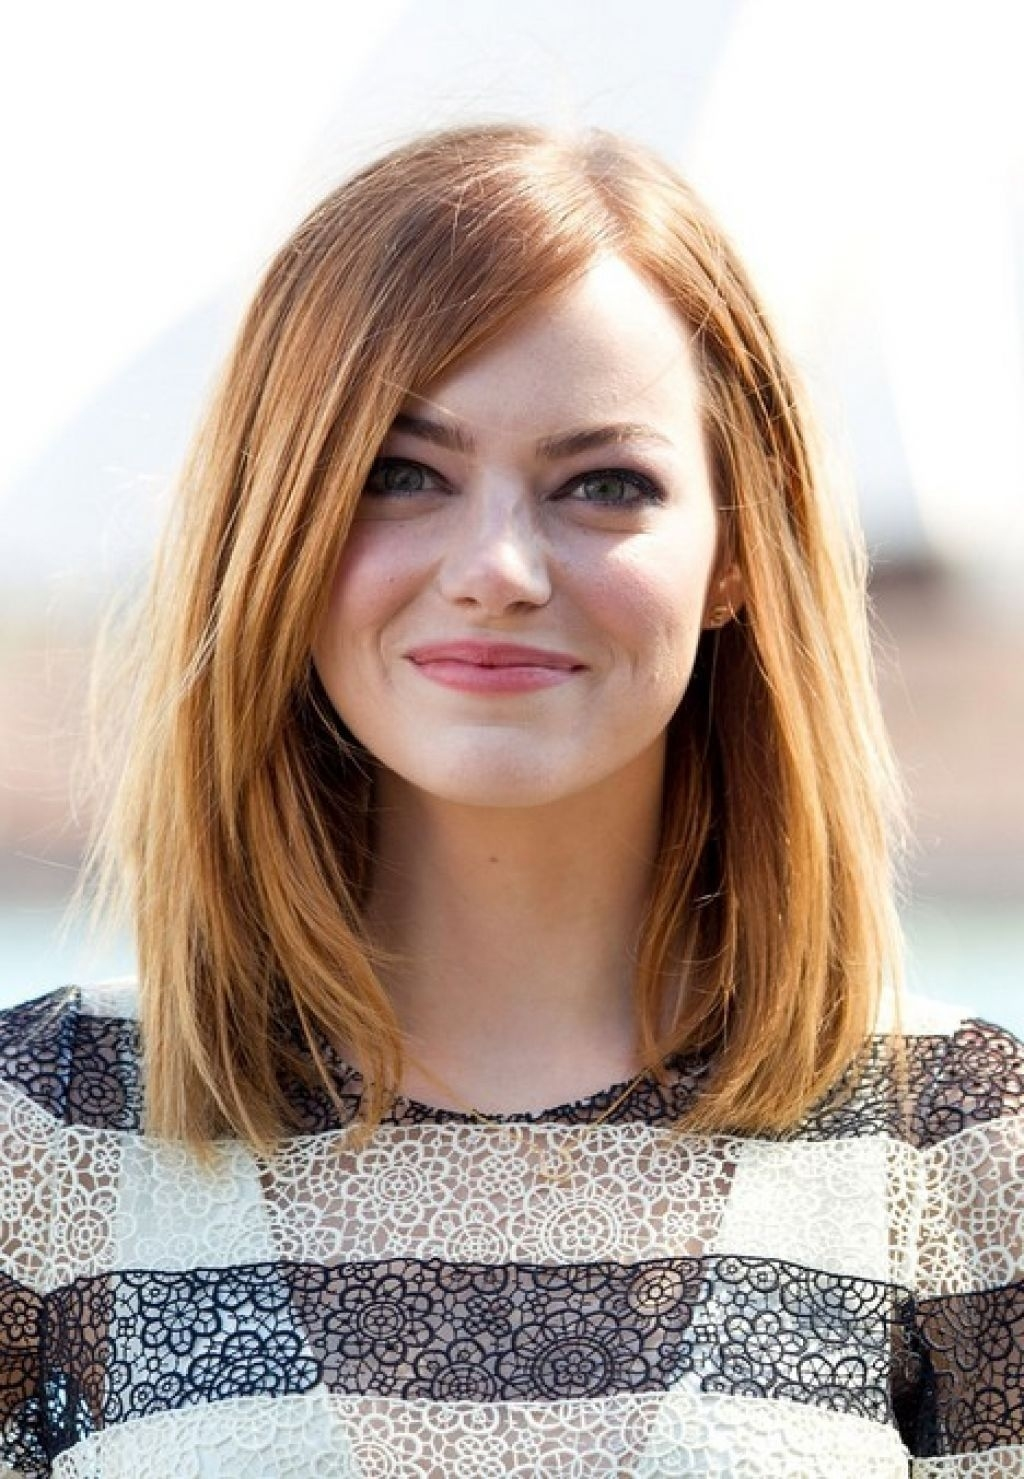 Asian Women Hairstyles For Round Faces Haircut For Round Chubby Face in Asian Bangs Hairstyle For Round Face